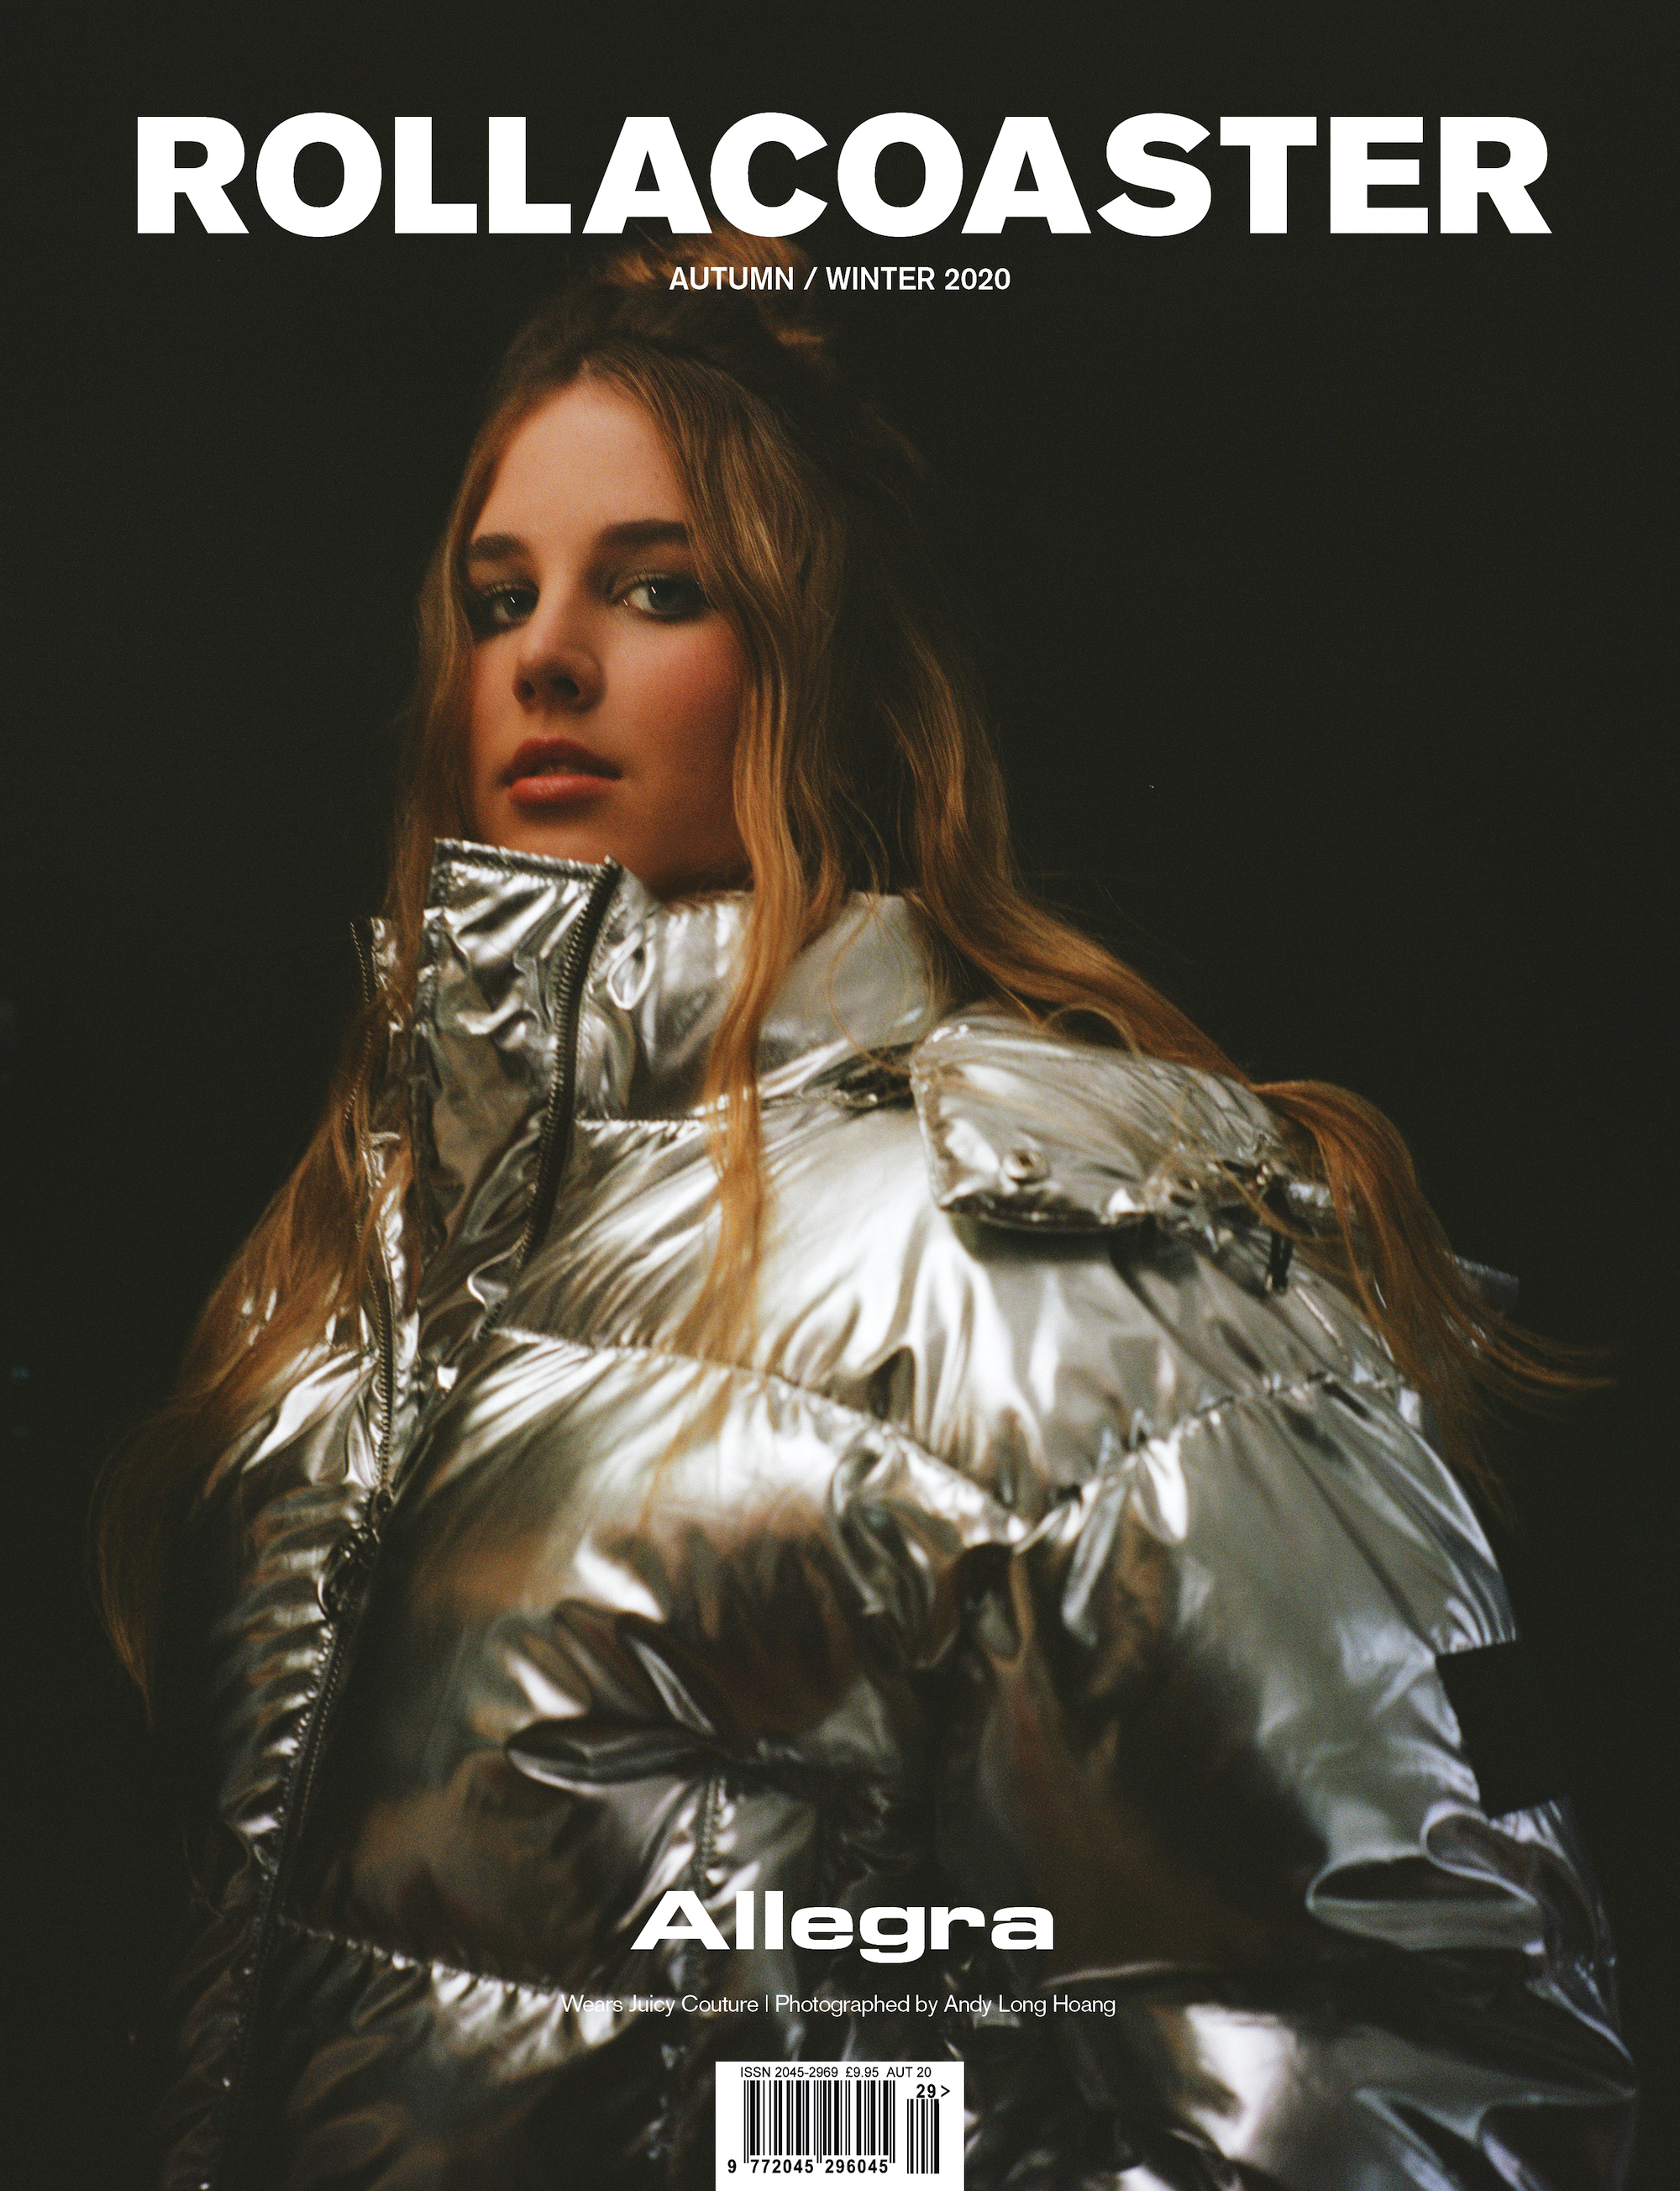 ALLEGRA covers the AW20 issue of rollacoaster